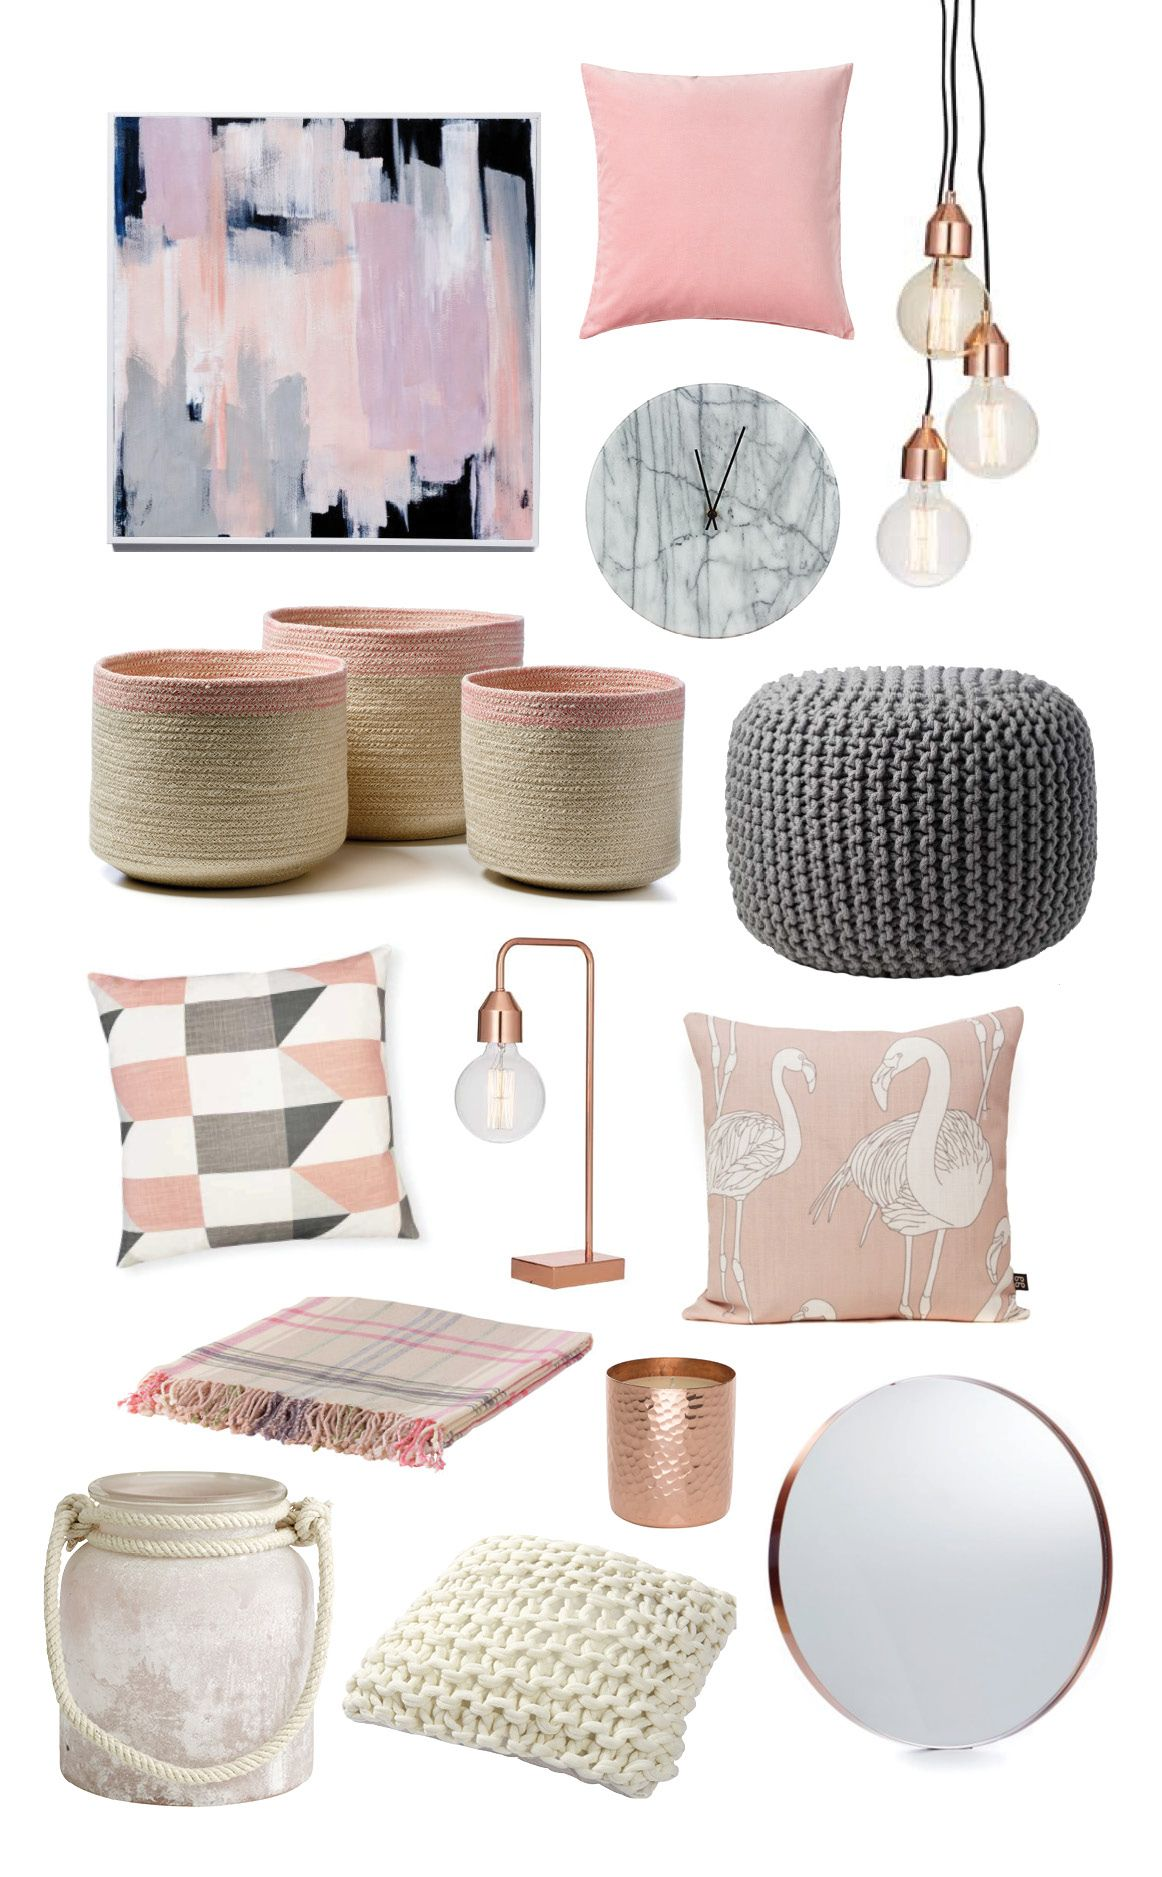 Trending items blush pink click through for stockists for House decor accessories